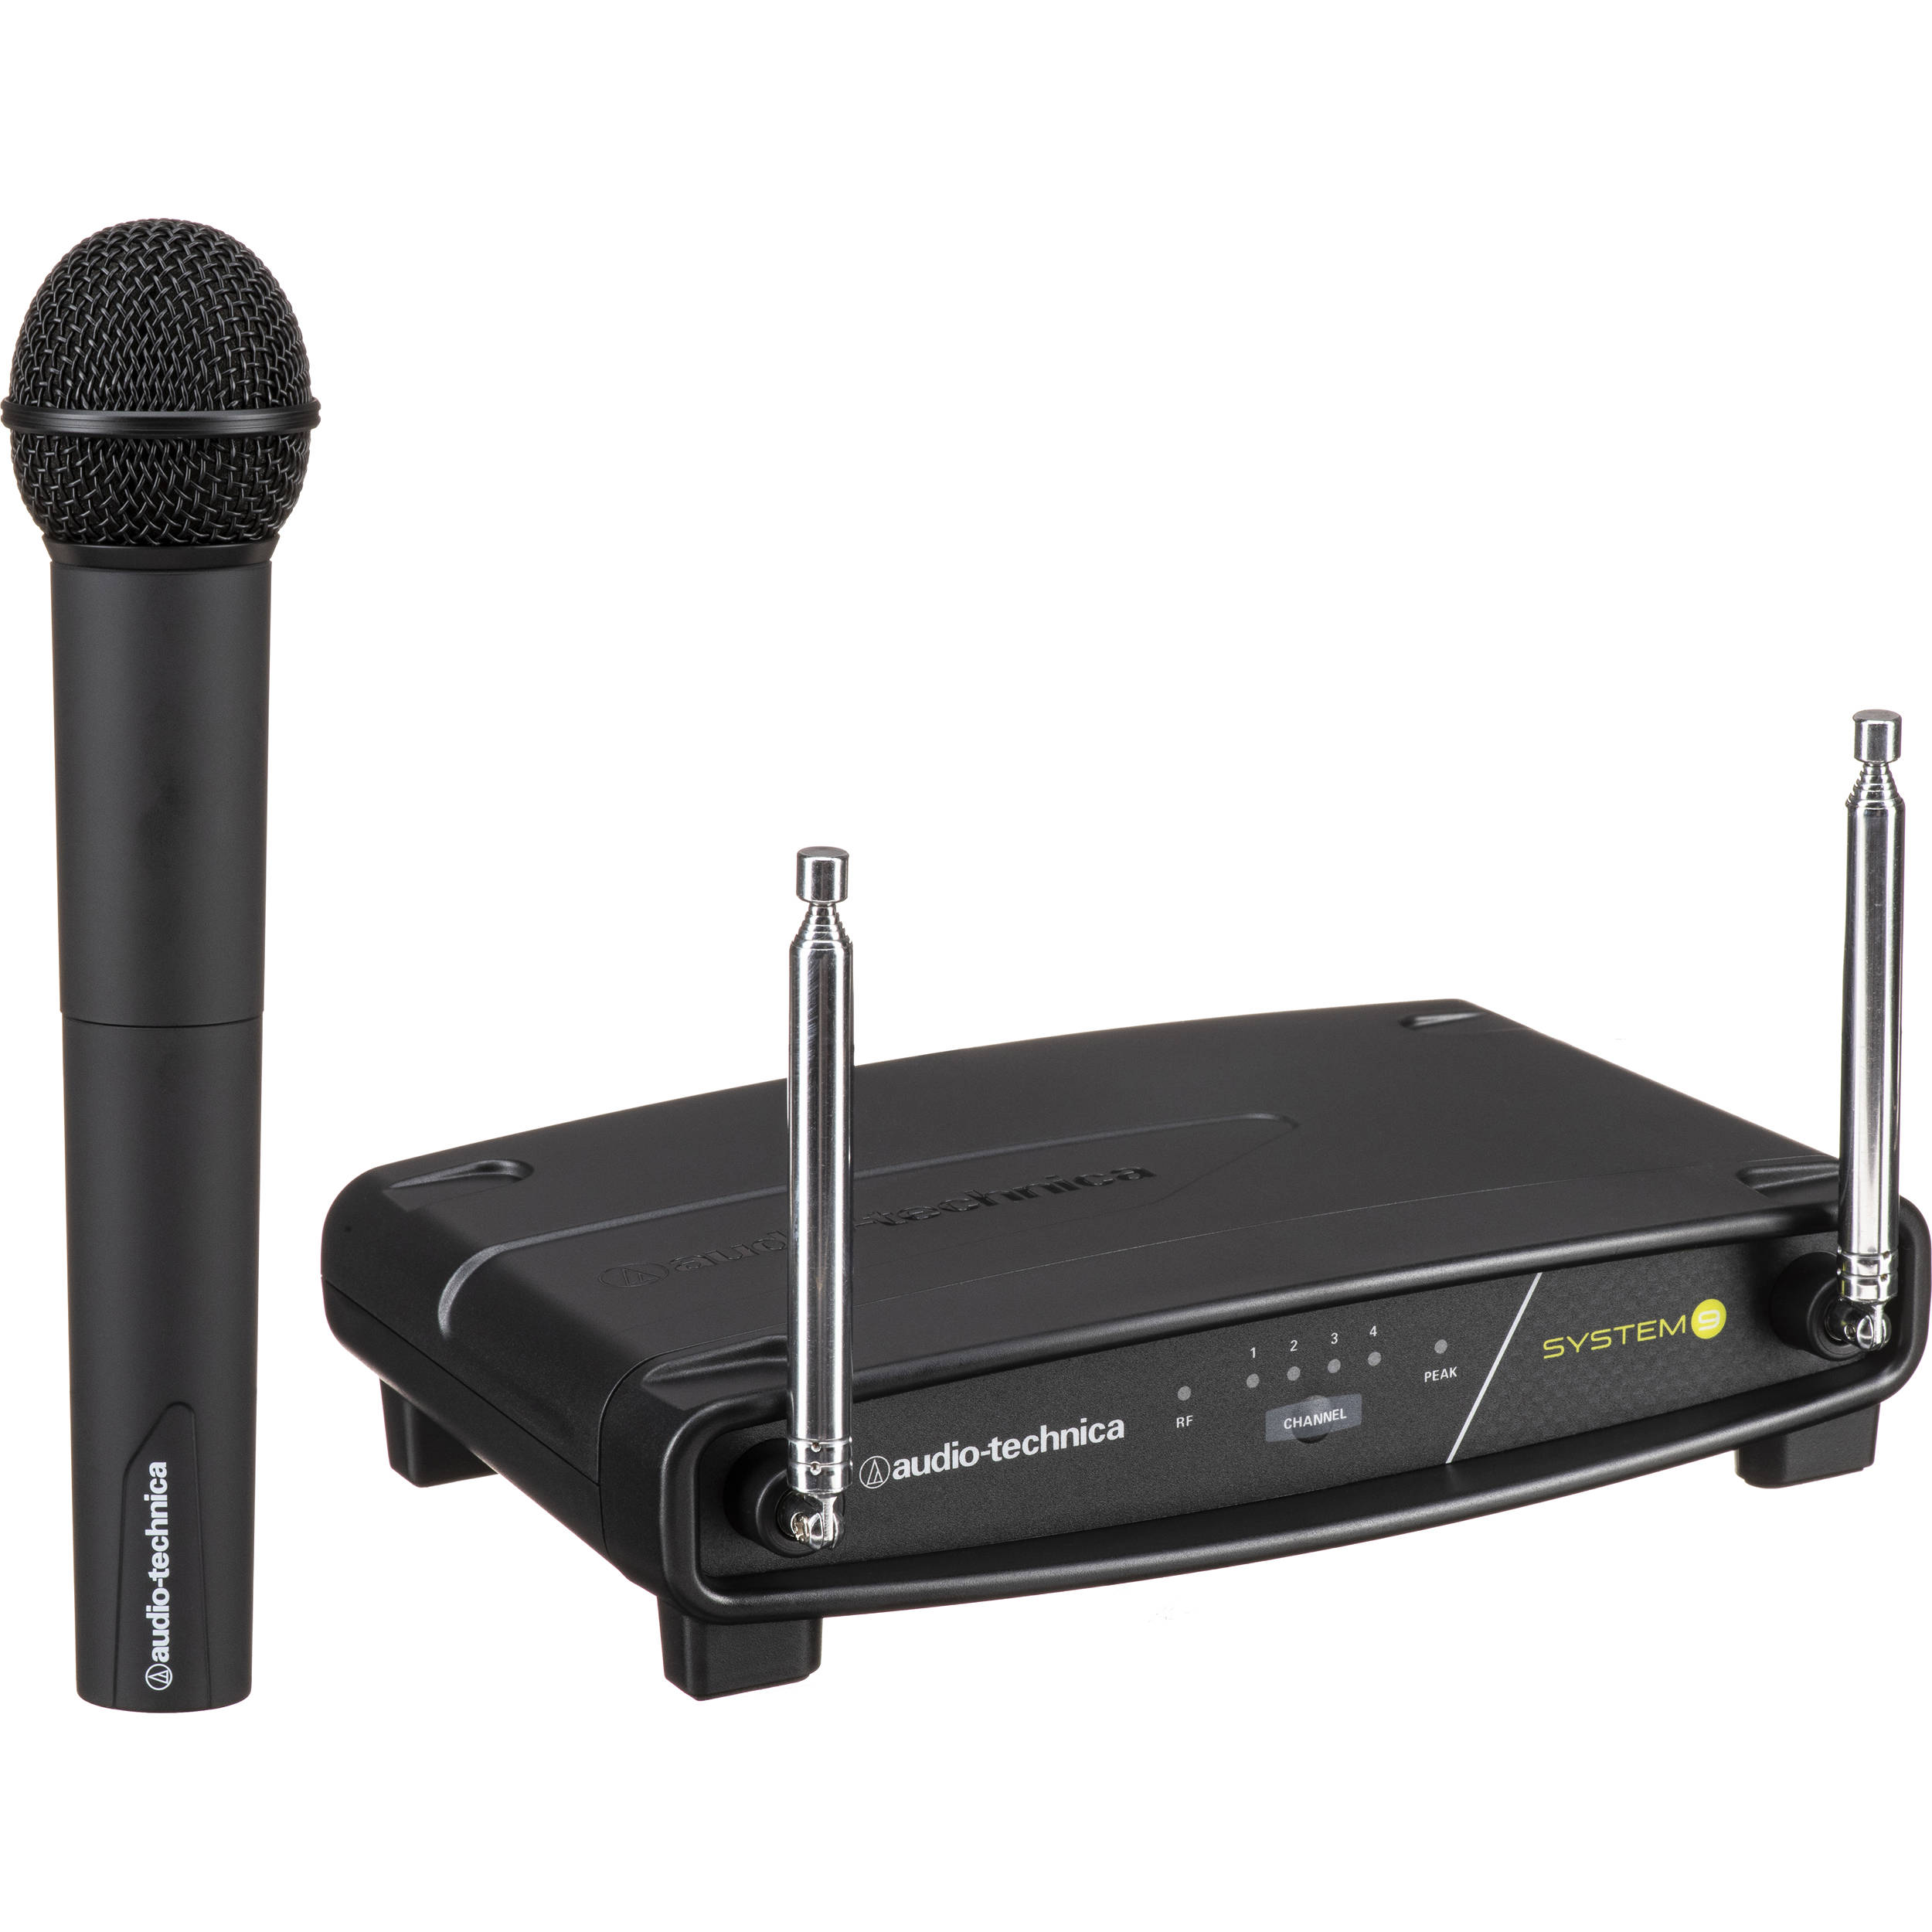 Audio Technica Wireless Microphone System Workout Blog Wiring Diagram Atw 902a 9 Vhf Handheld Studio